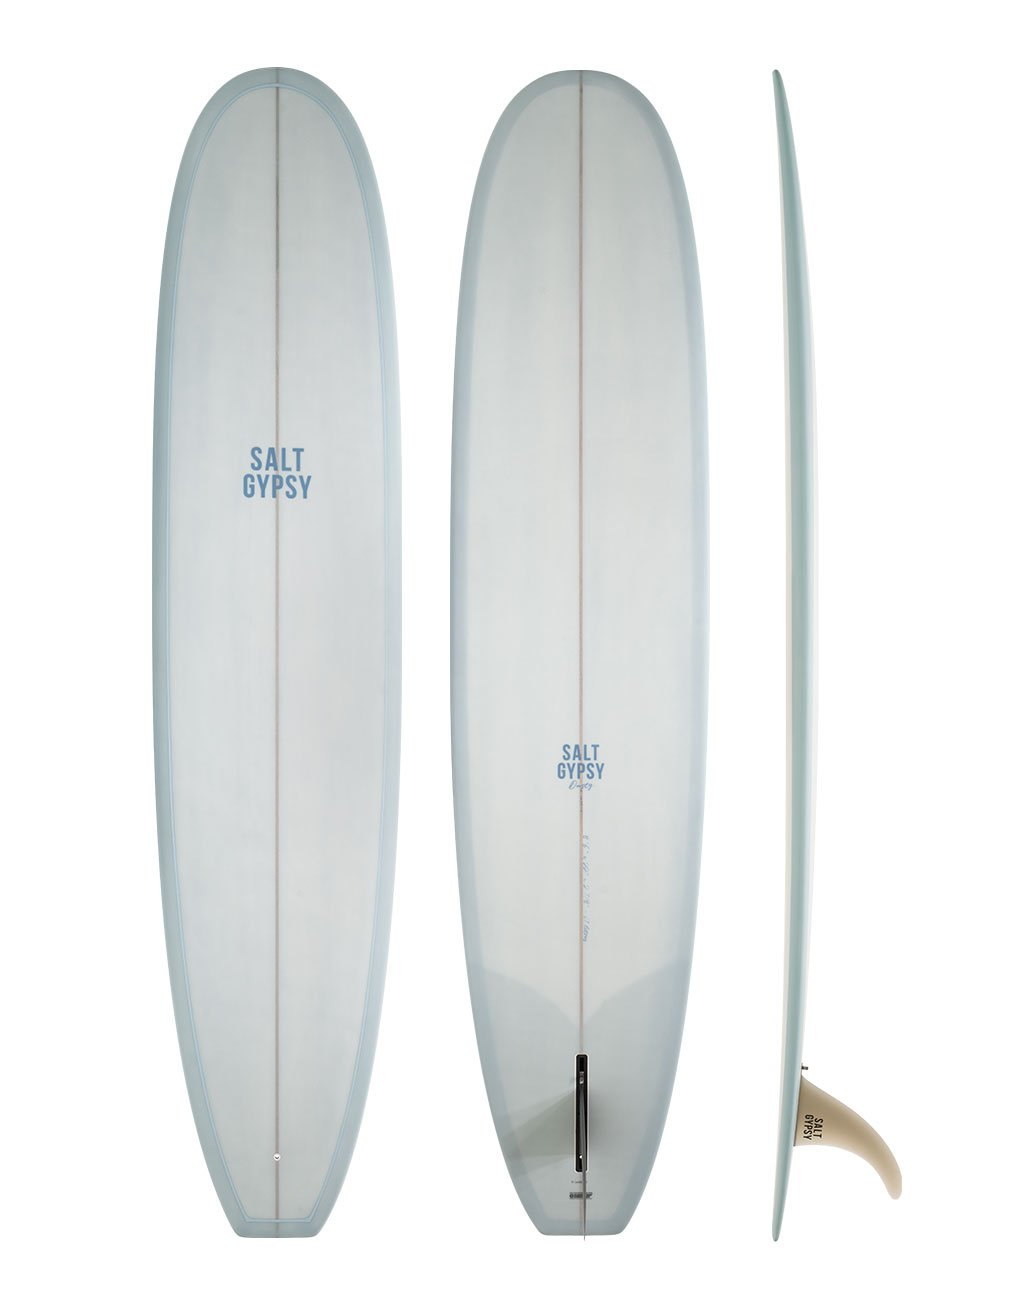 Salt Gypsy Dusty Retro Longboard